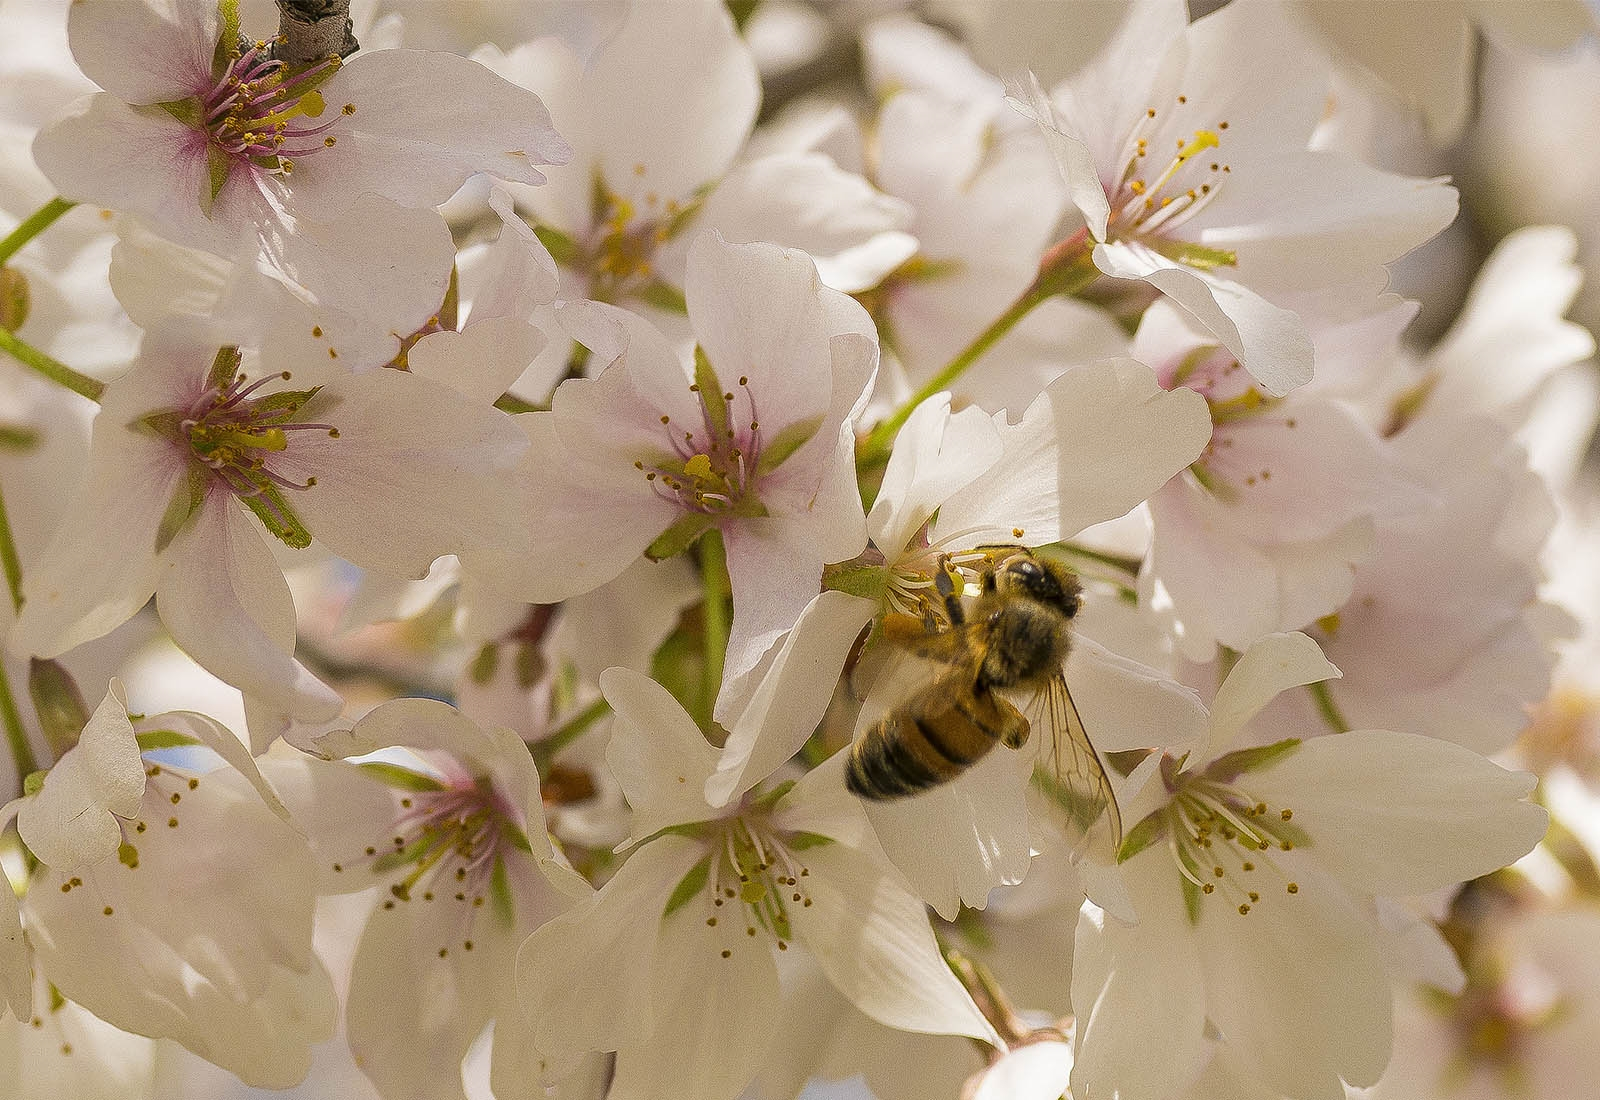 A busy bee collects nectar from cherry blossoms in the Buffalo Olmsted Parks Conservancy's Japanese Garden behind The Buffalo History Museum.